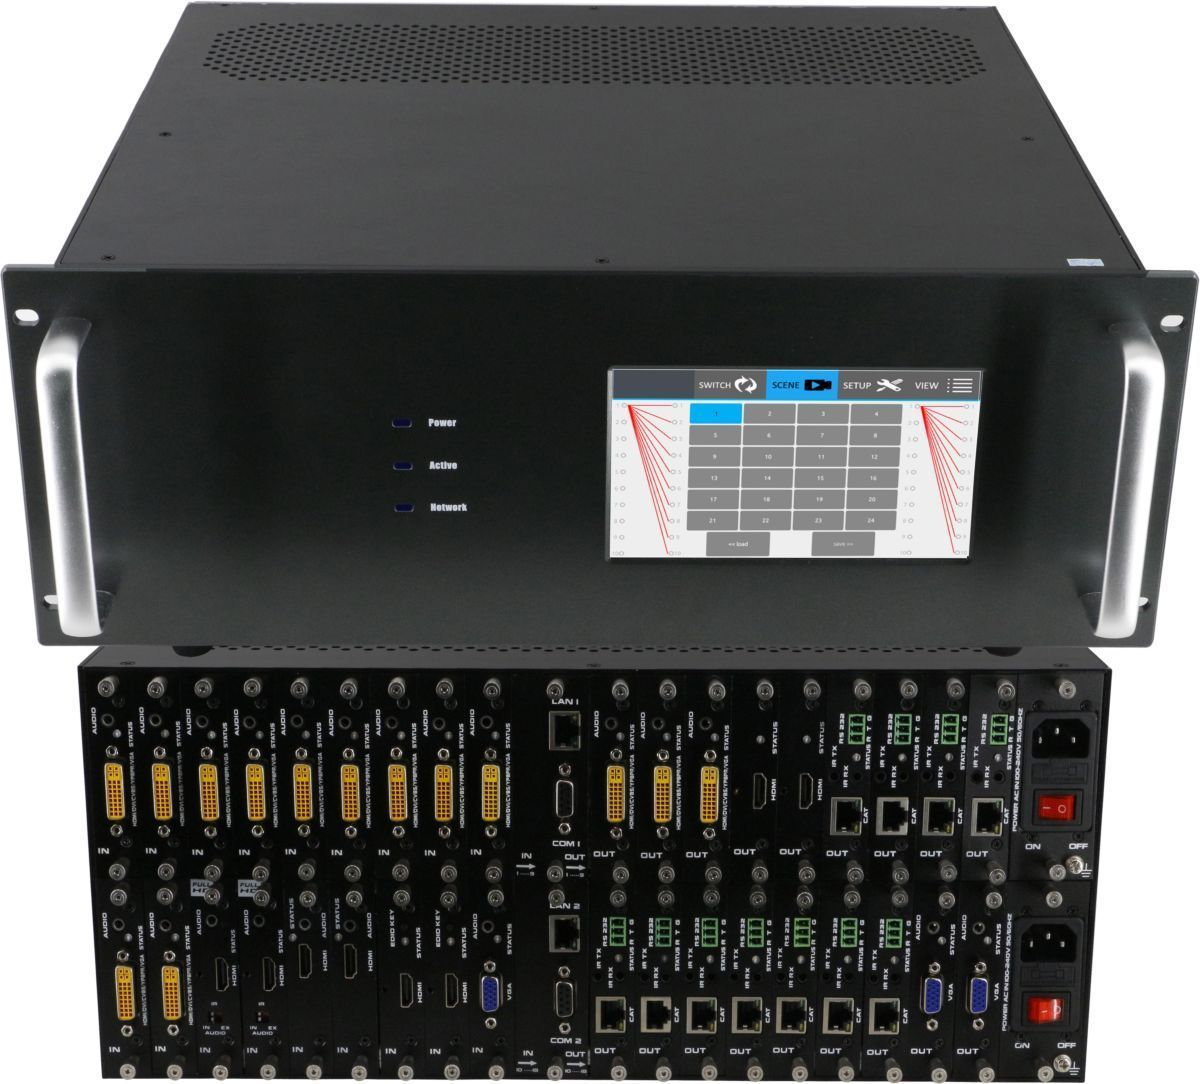 4K 10x18 HDMI Matrix Switcher with Color Touchscreen